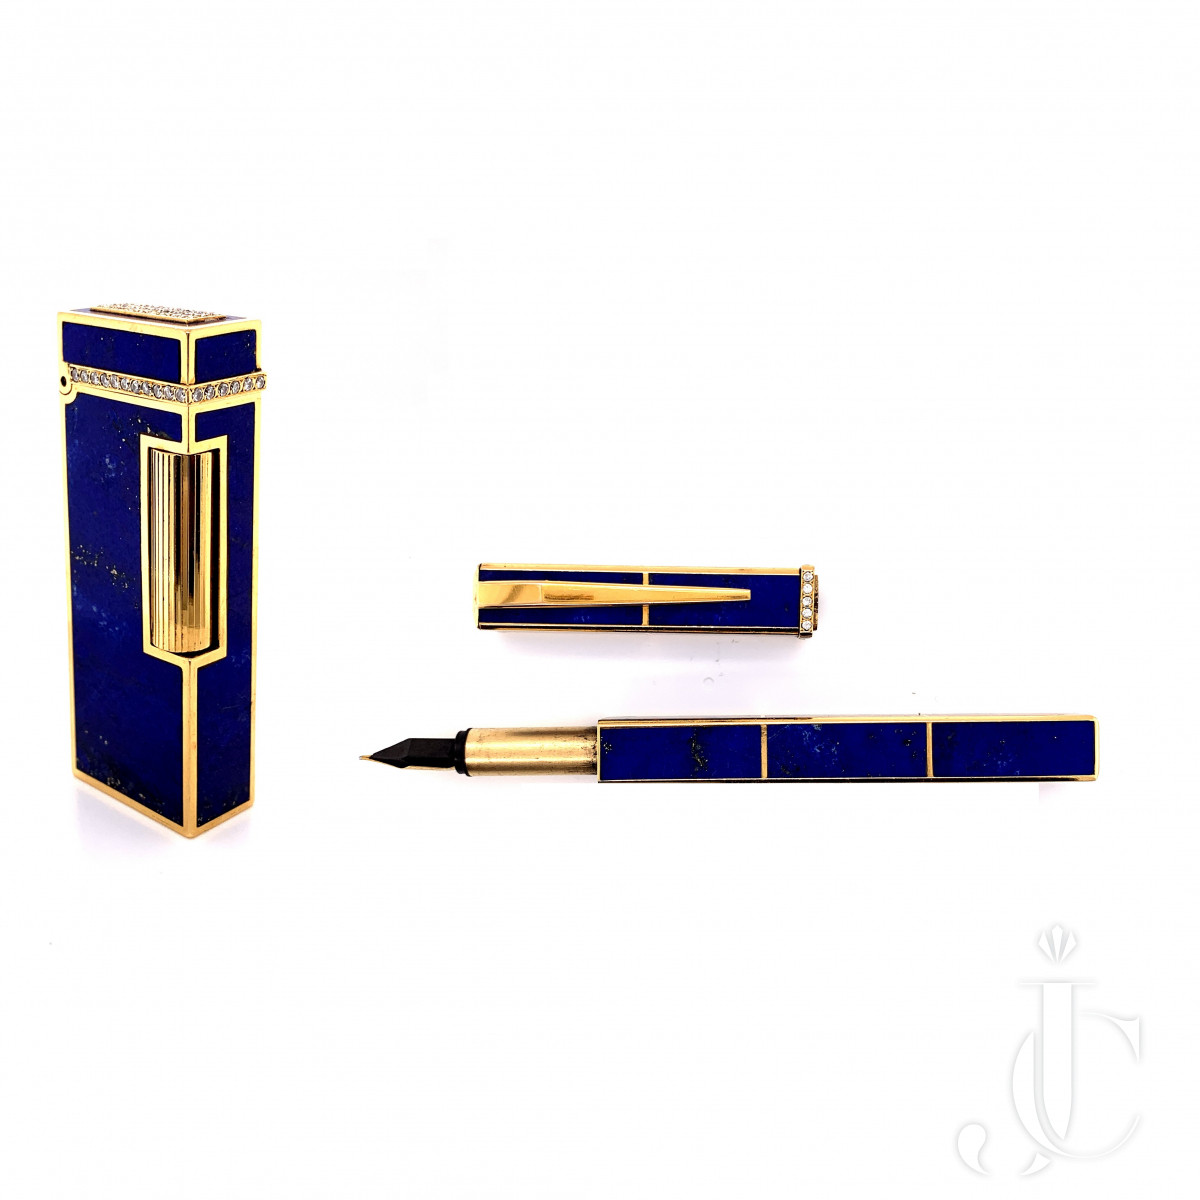 An 18k gold lapis and diamond pen and lighter by Boucheron